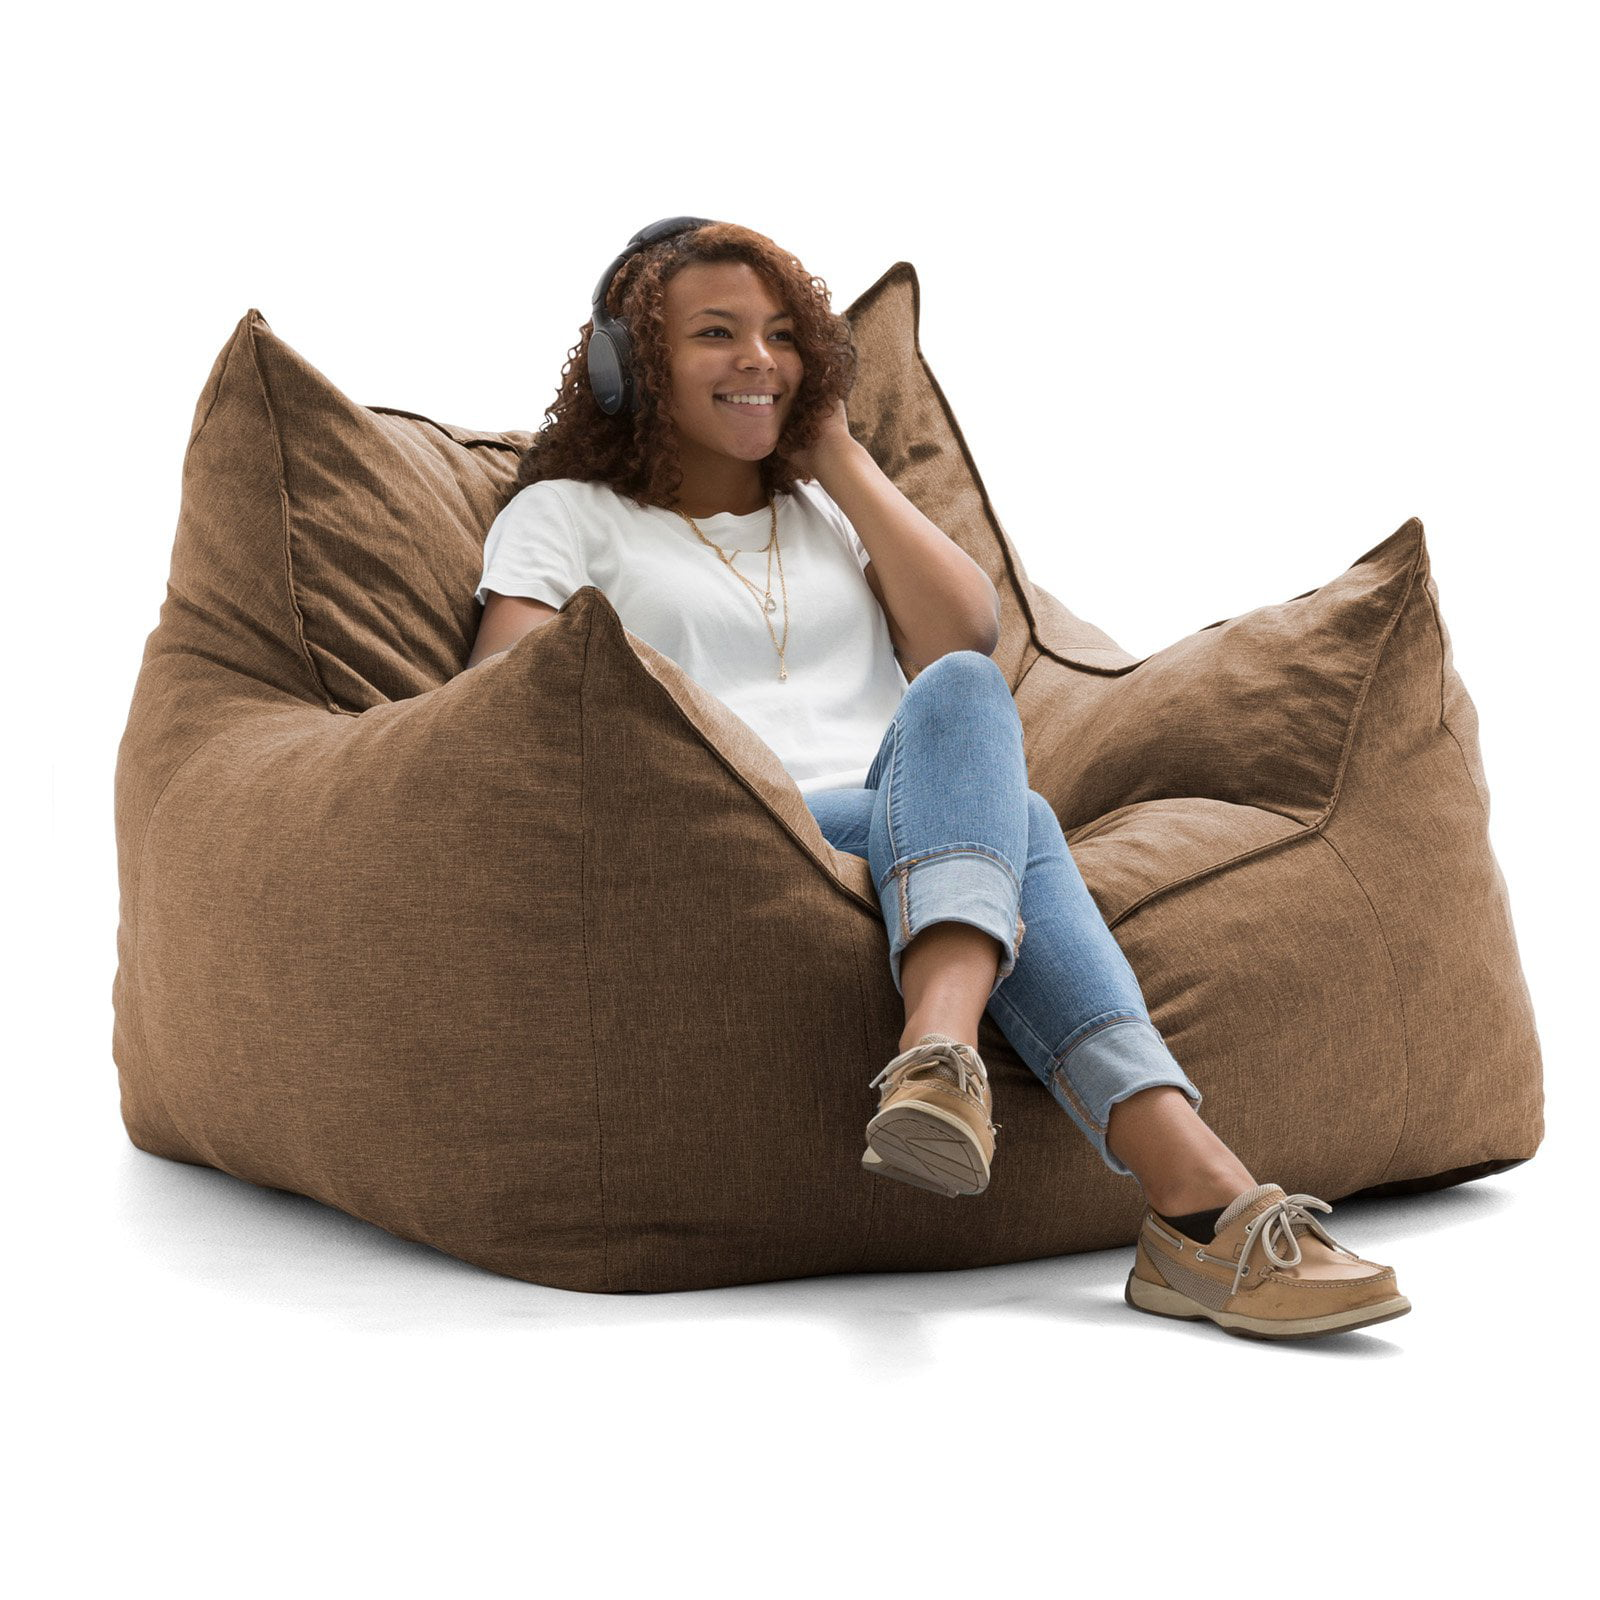 Lux By Joe Imperial Lounger Union Bean Bag